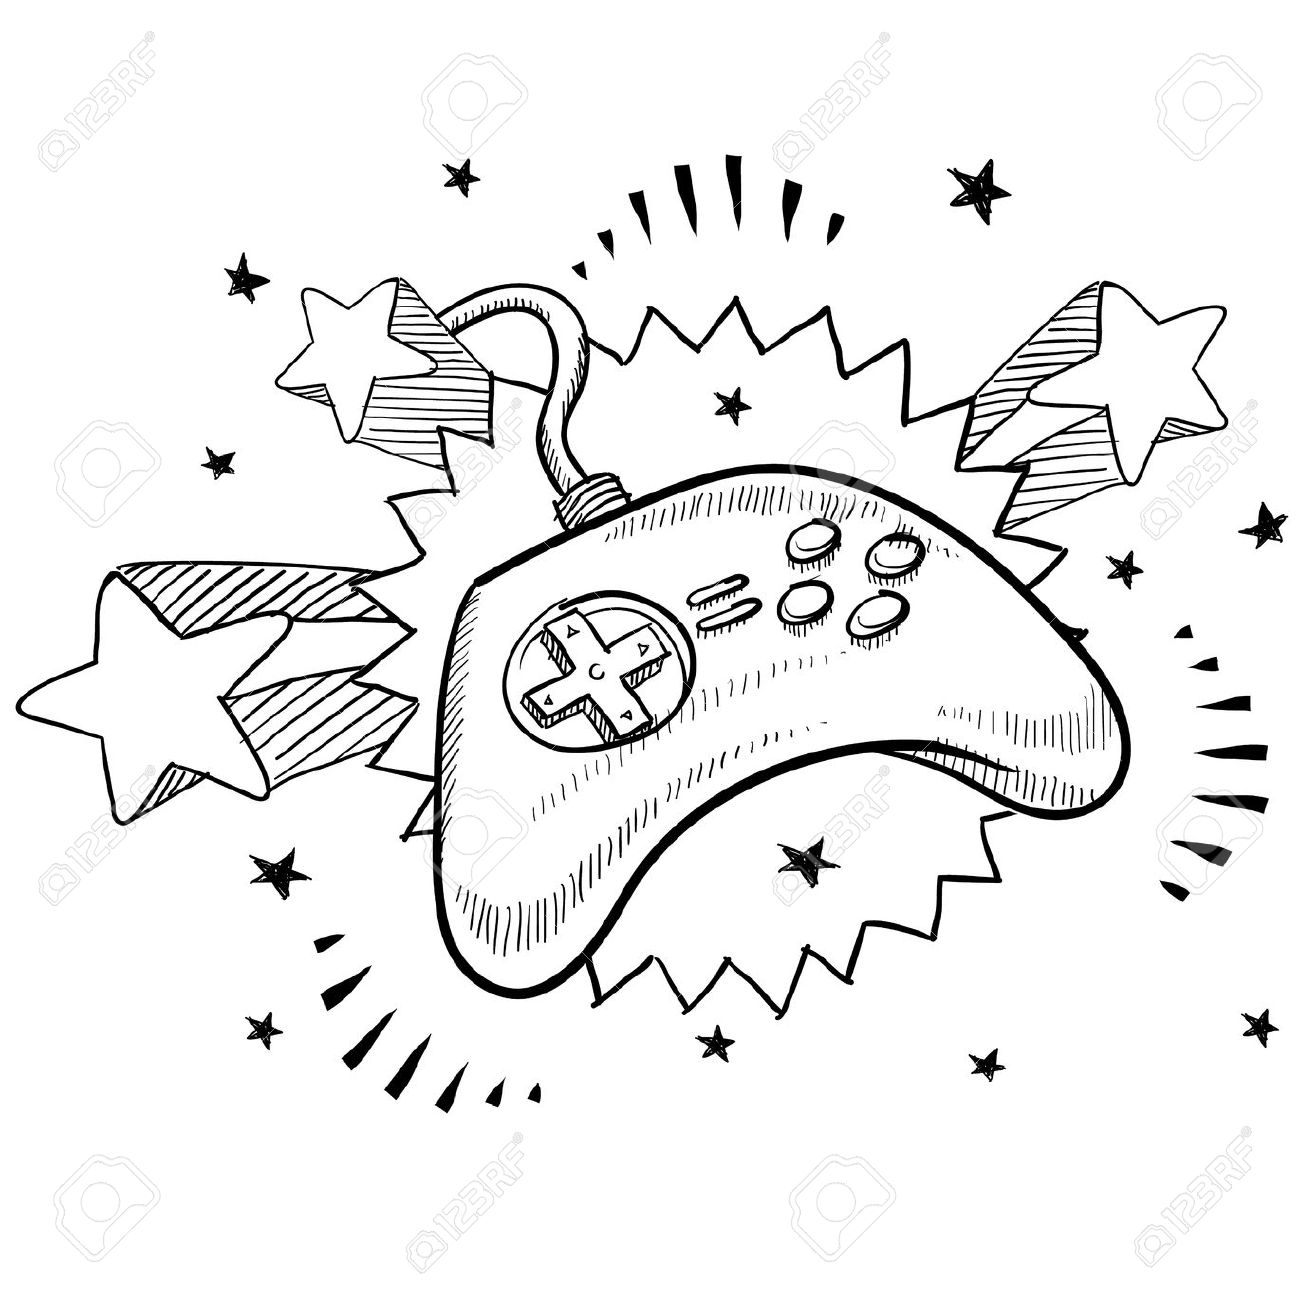 The Best Free Controller Drawing Images Download From 555